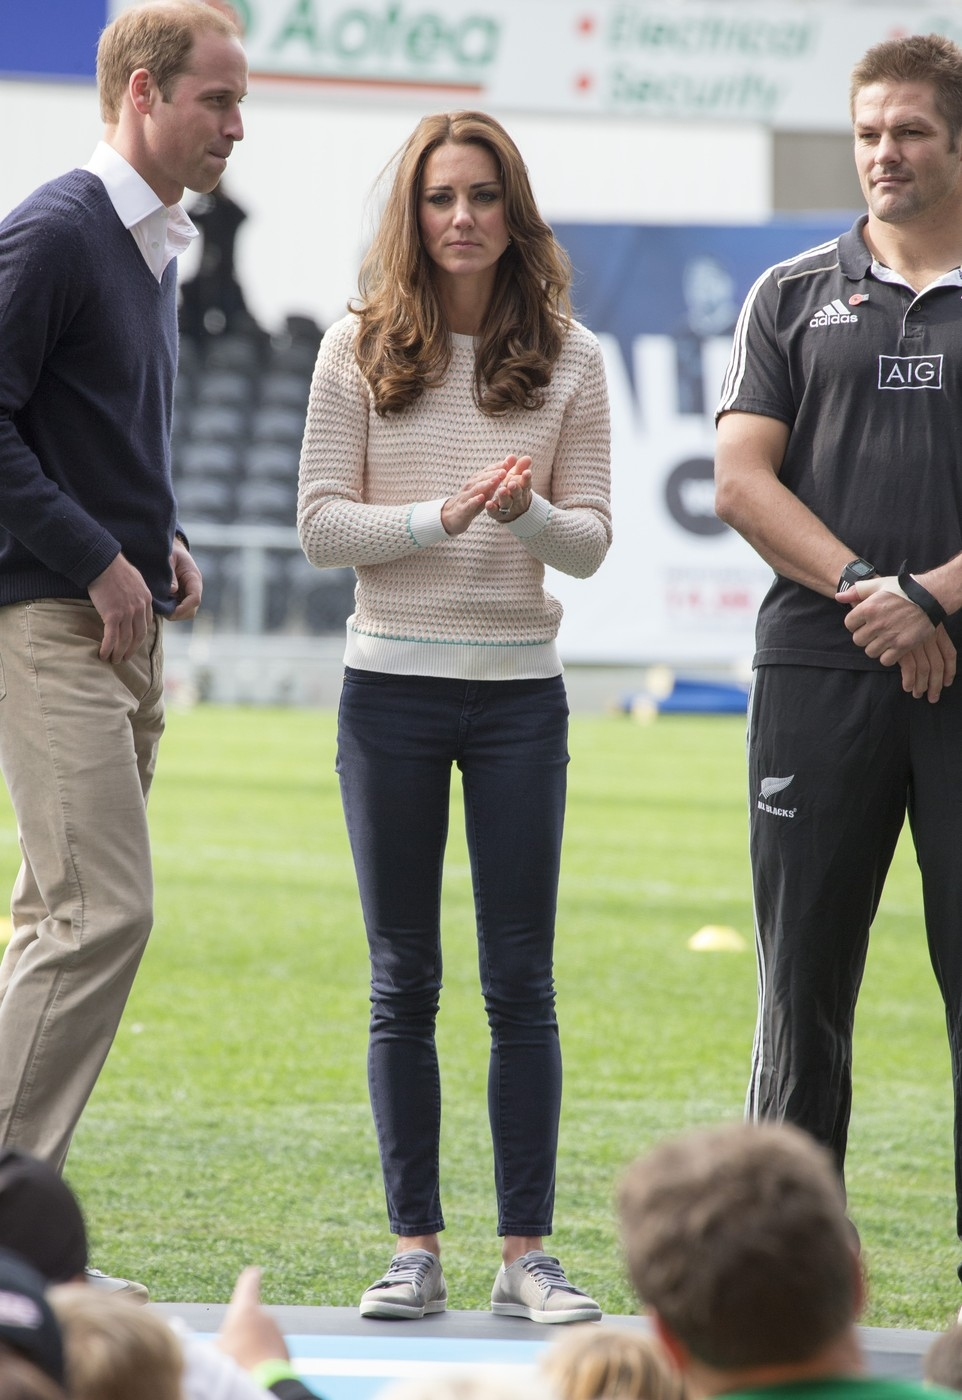 The Duke and Duchess of Cambridge at the Rippa rugby event in Dunedin